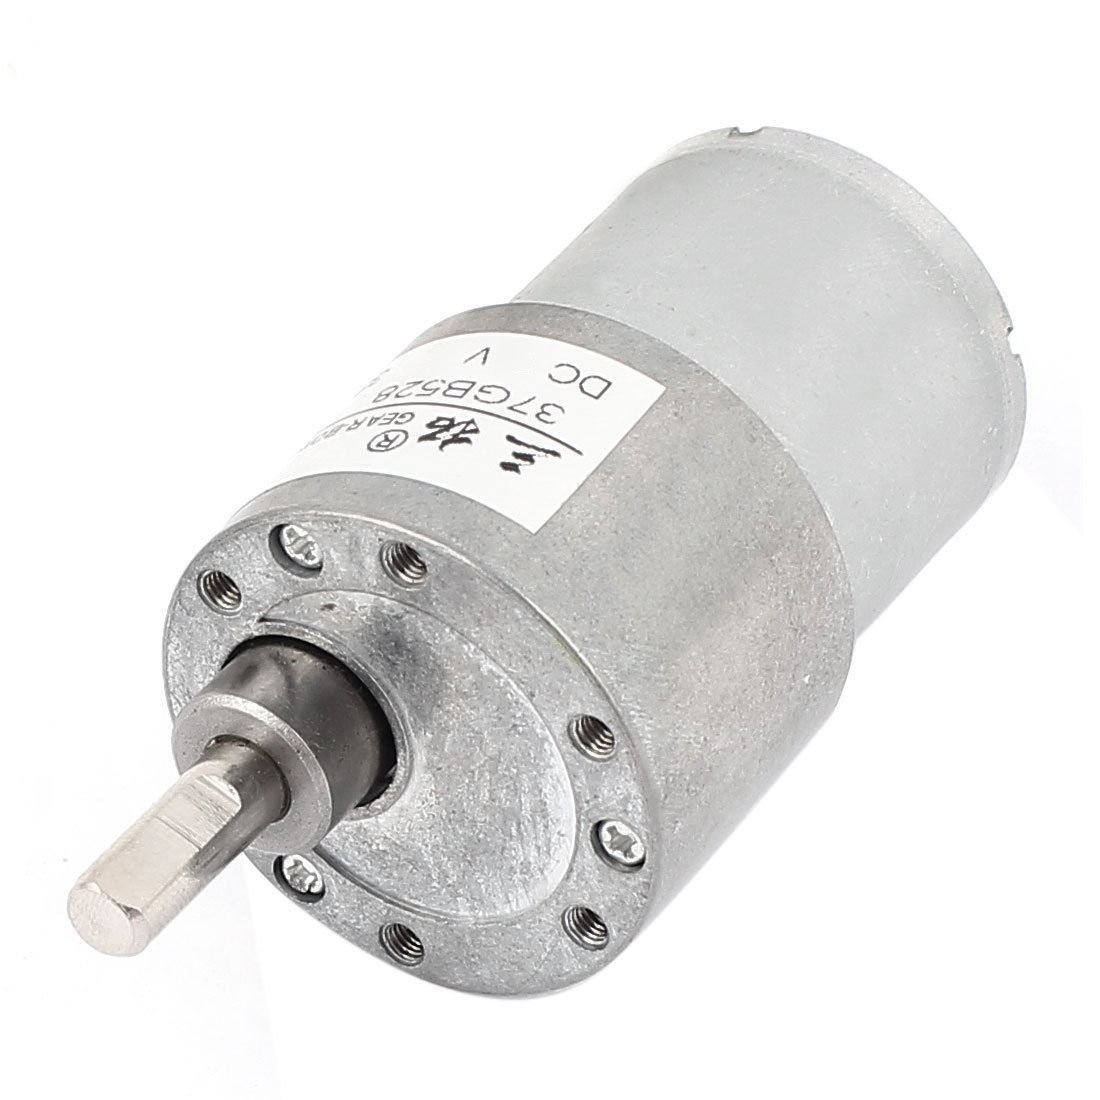 DC 12V 8RPM 0.2A 37mm Diameter 9KG.cm DC GearBox Reducer Variable Speed Motor